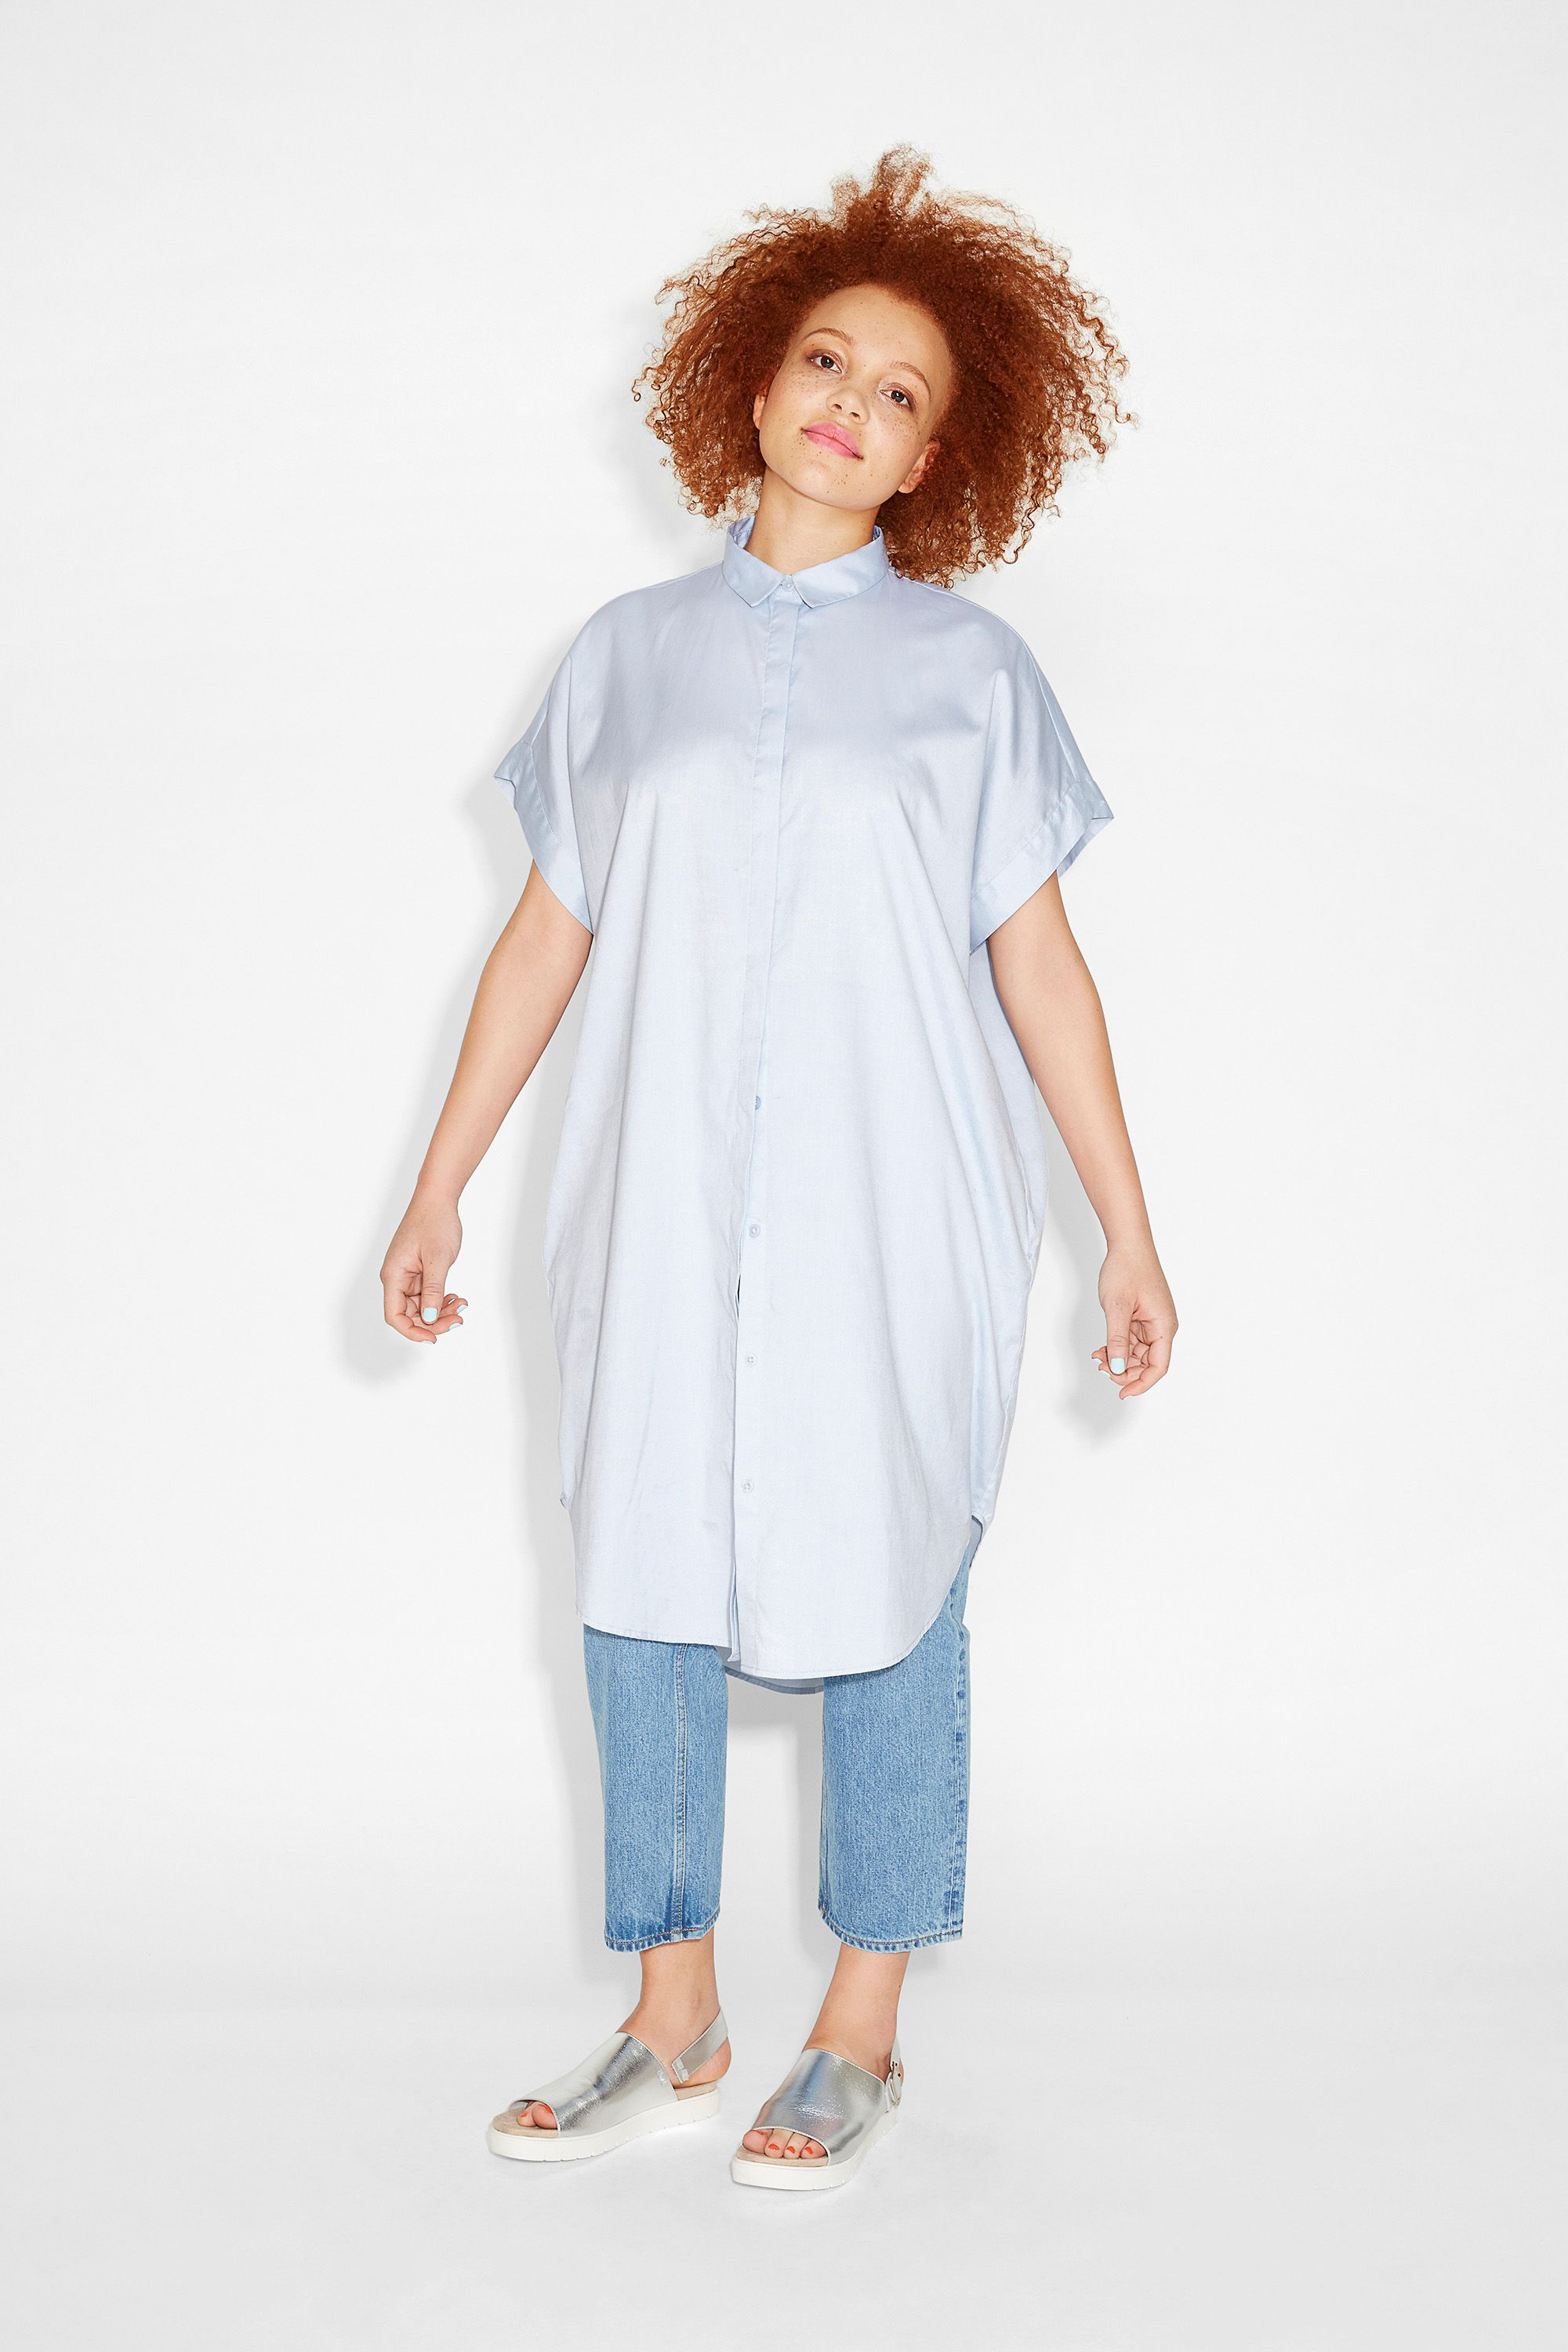 Large and in charge, this oversize sleeveless shirt dress is an awesomely dramatic interpretation of a closet staple.